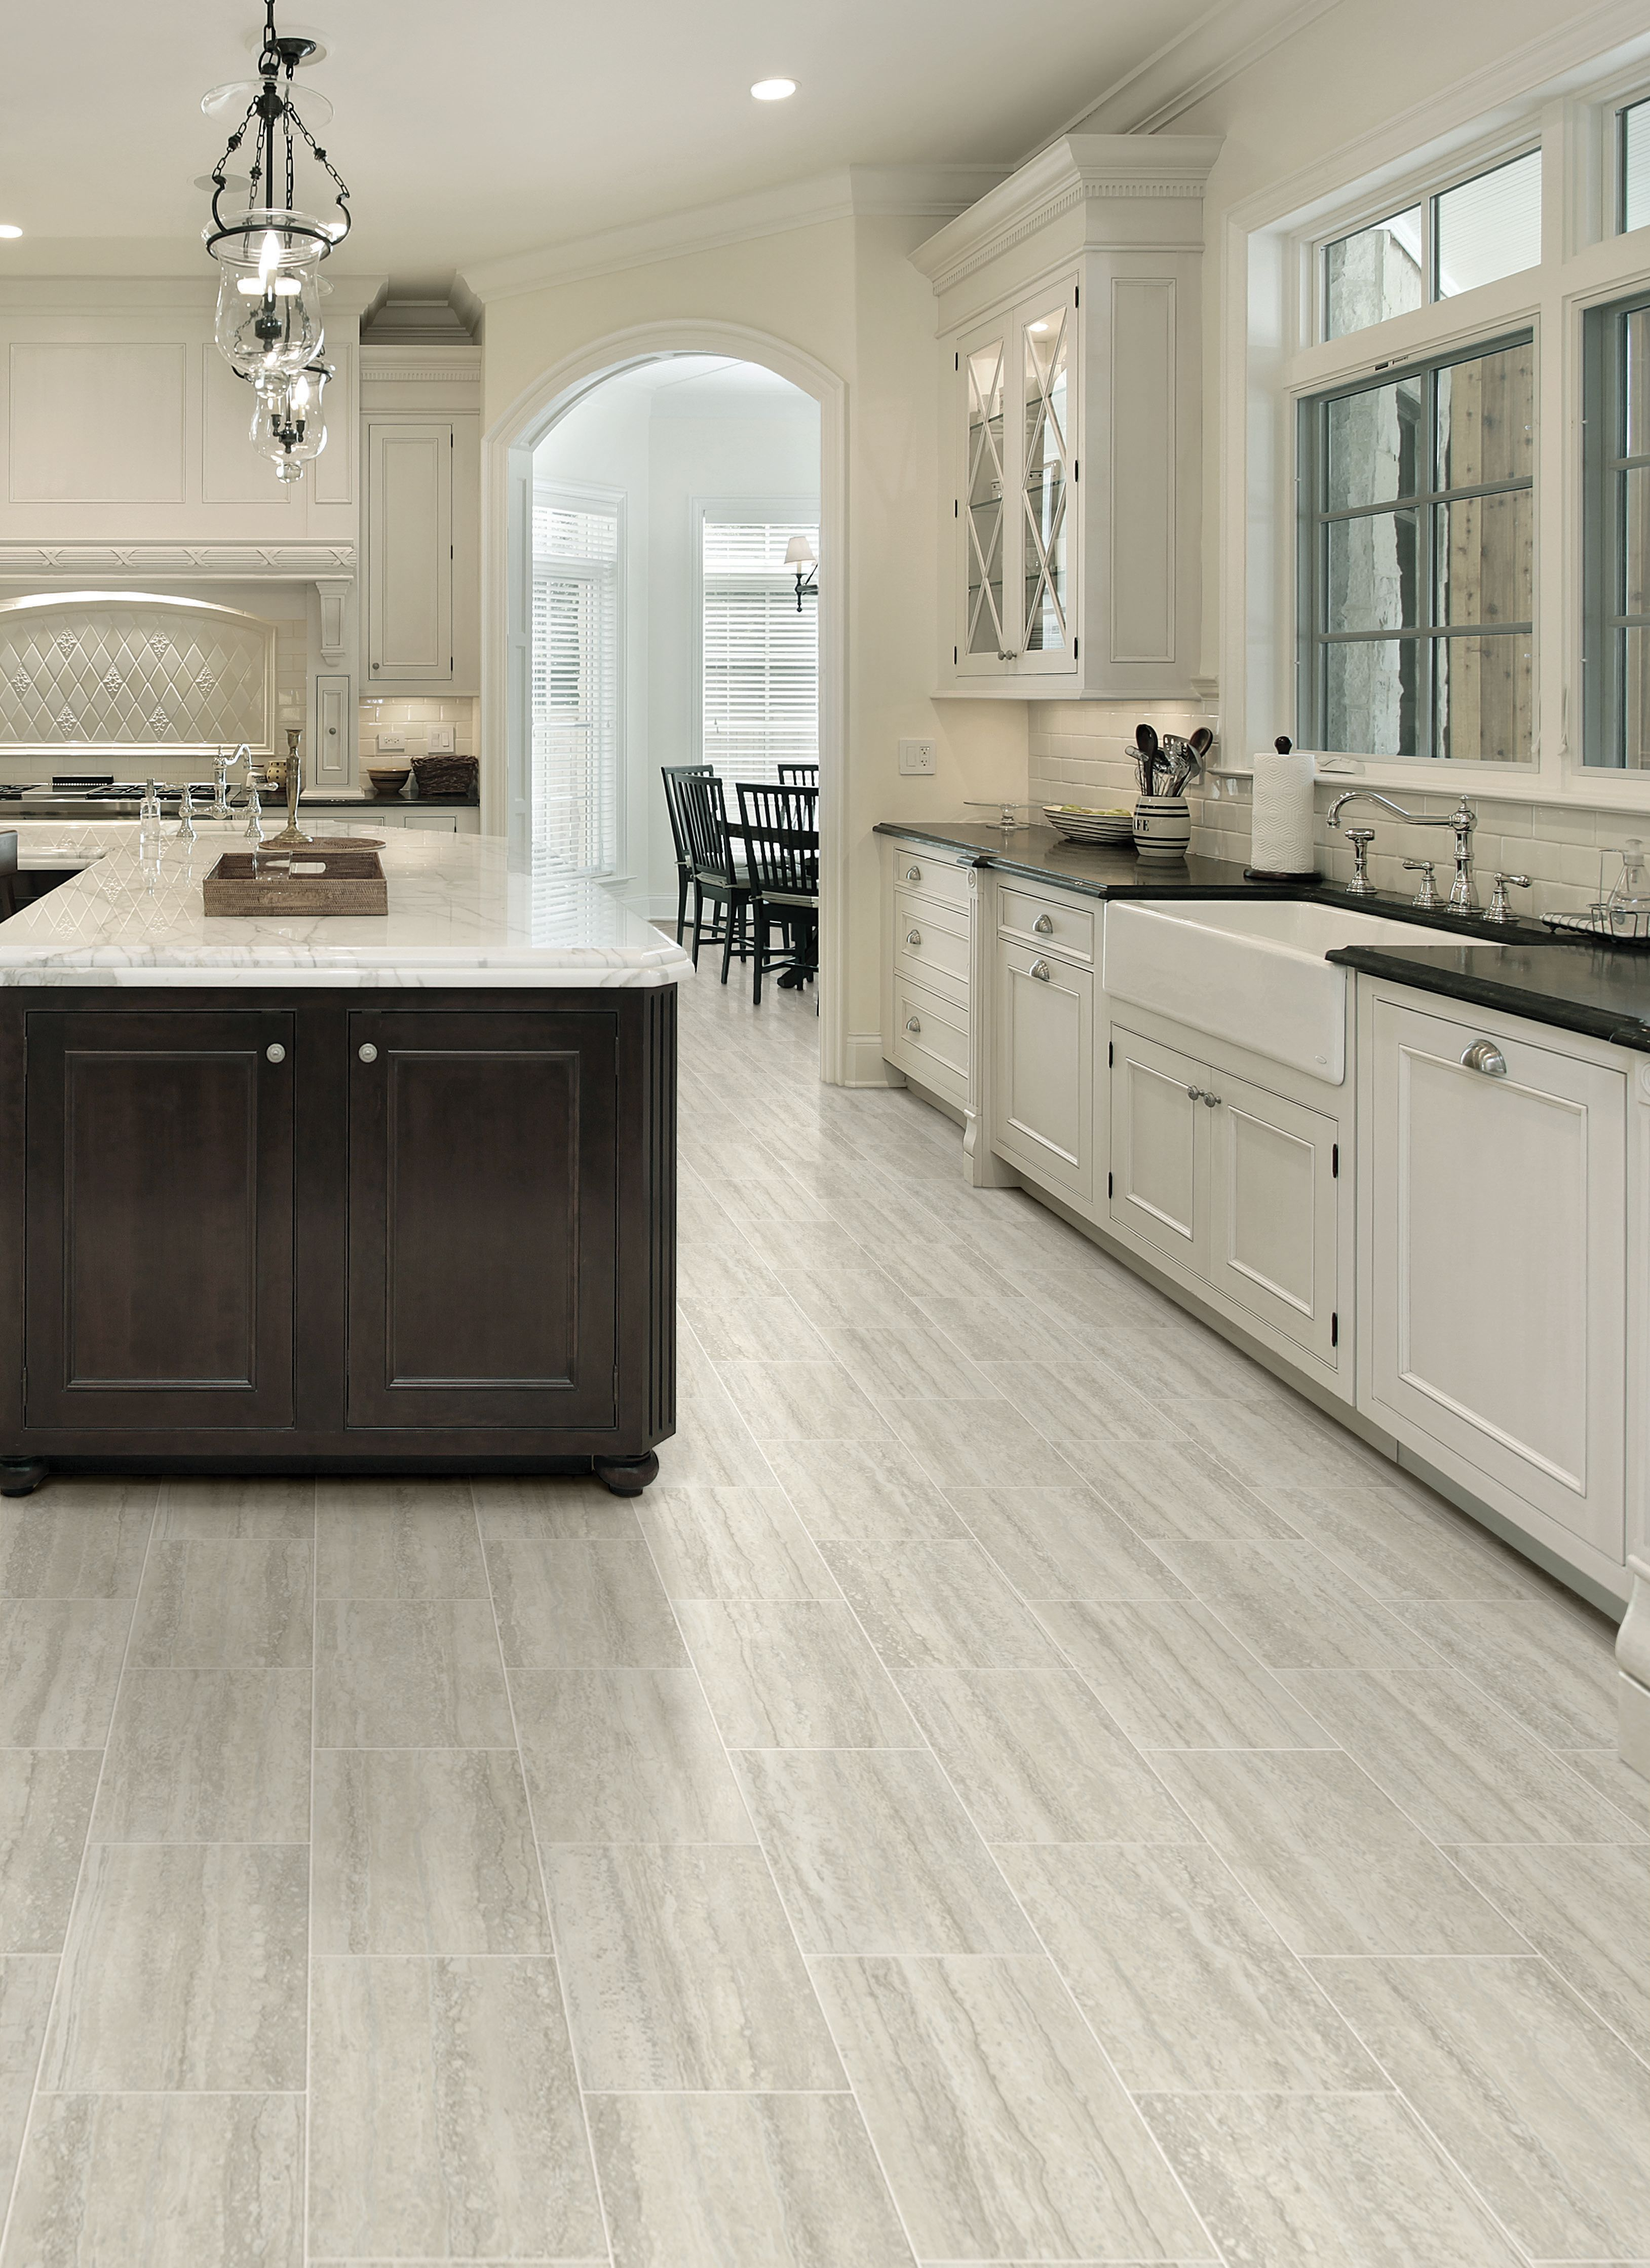 Vinyl Kitchen Flooring Top Faucets Modernize Your With Durable And Comfortable Sheet